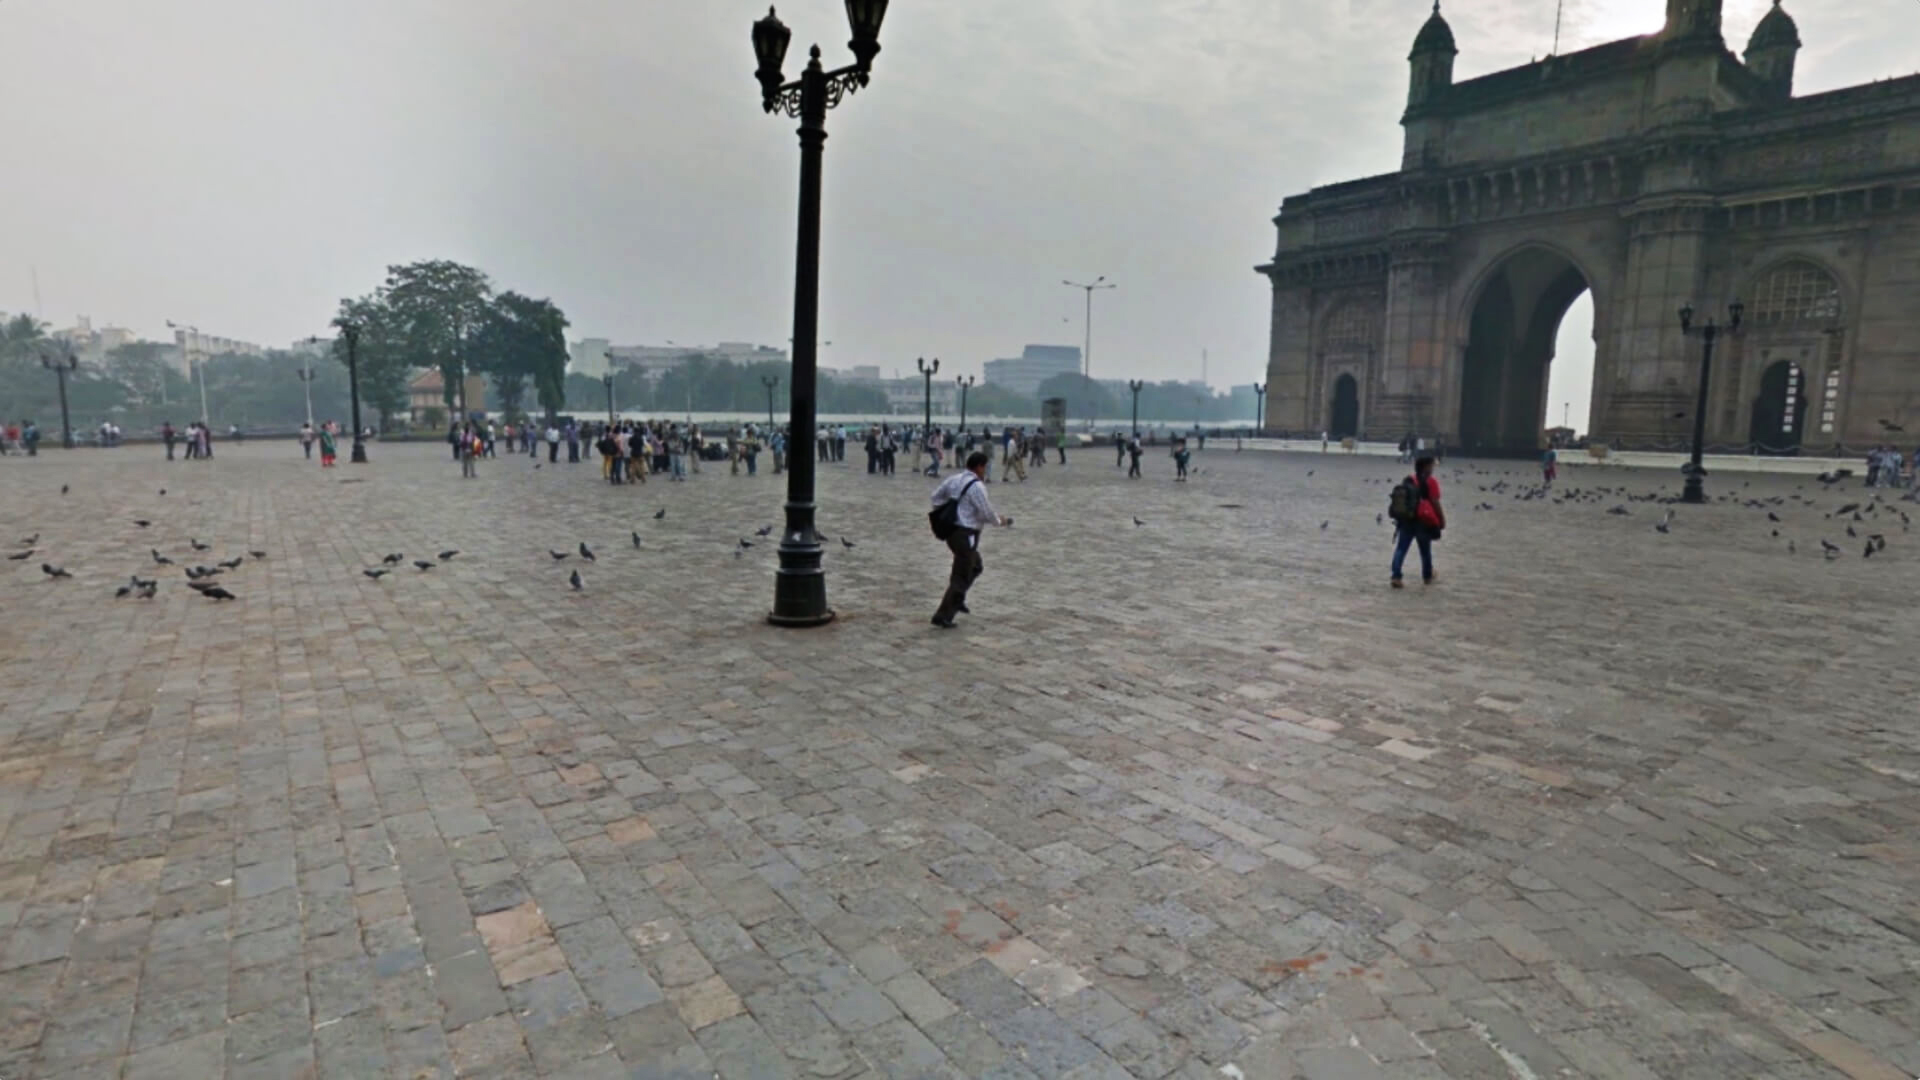 A still from Guided Tour (Gateway of India) | Algo portraits by Tara Kelton | STIRworld